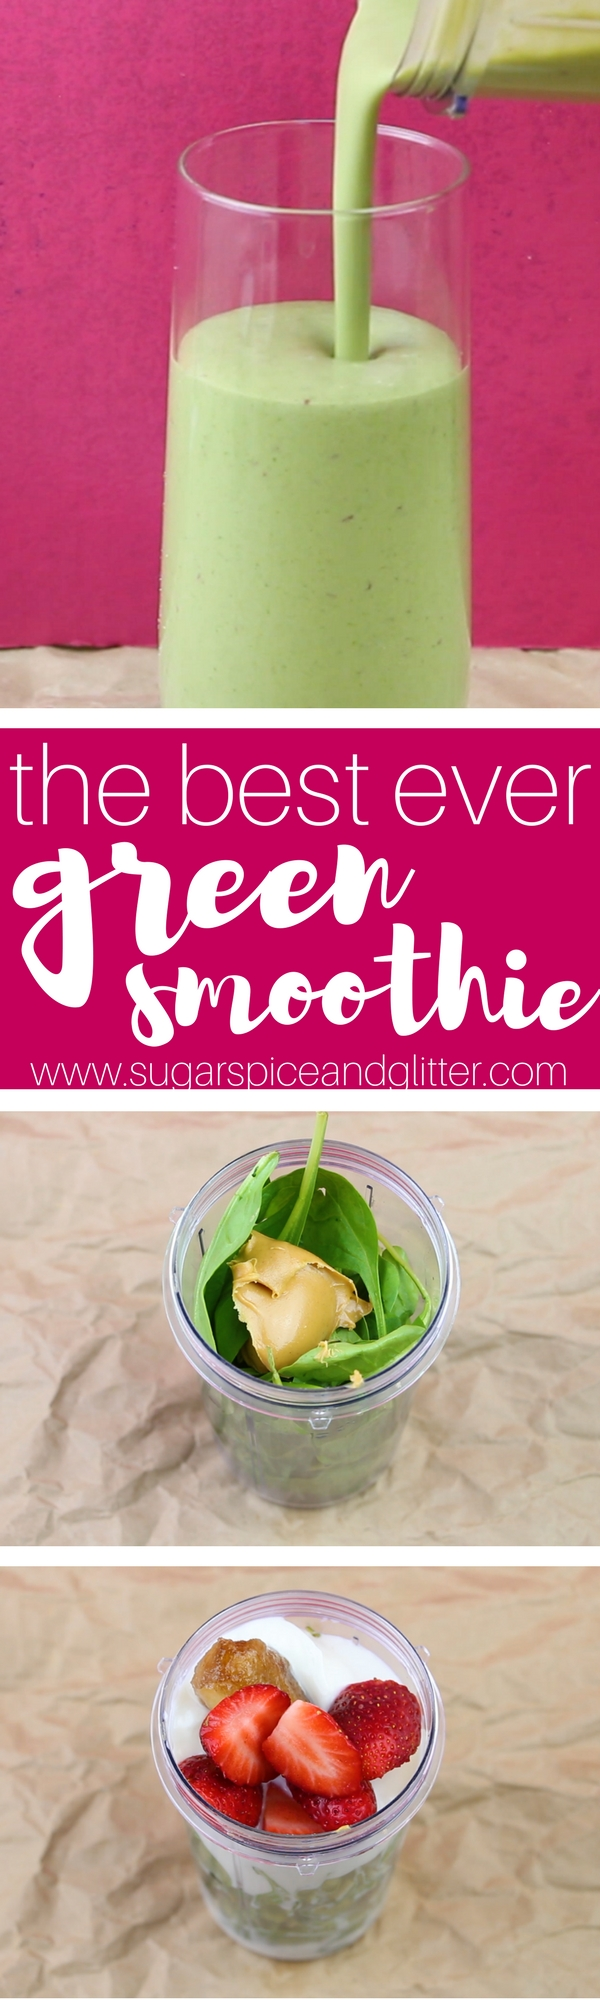 This BEST EVER Green smoothie recipe will revolutionize your mornings - helping you achieve your health goals with little effort or sacrifice. Despite having two cups of spinach, it tastes just like a peanut butter banana milkshake